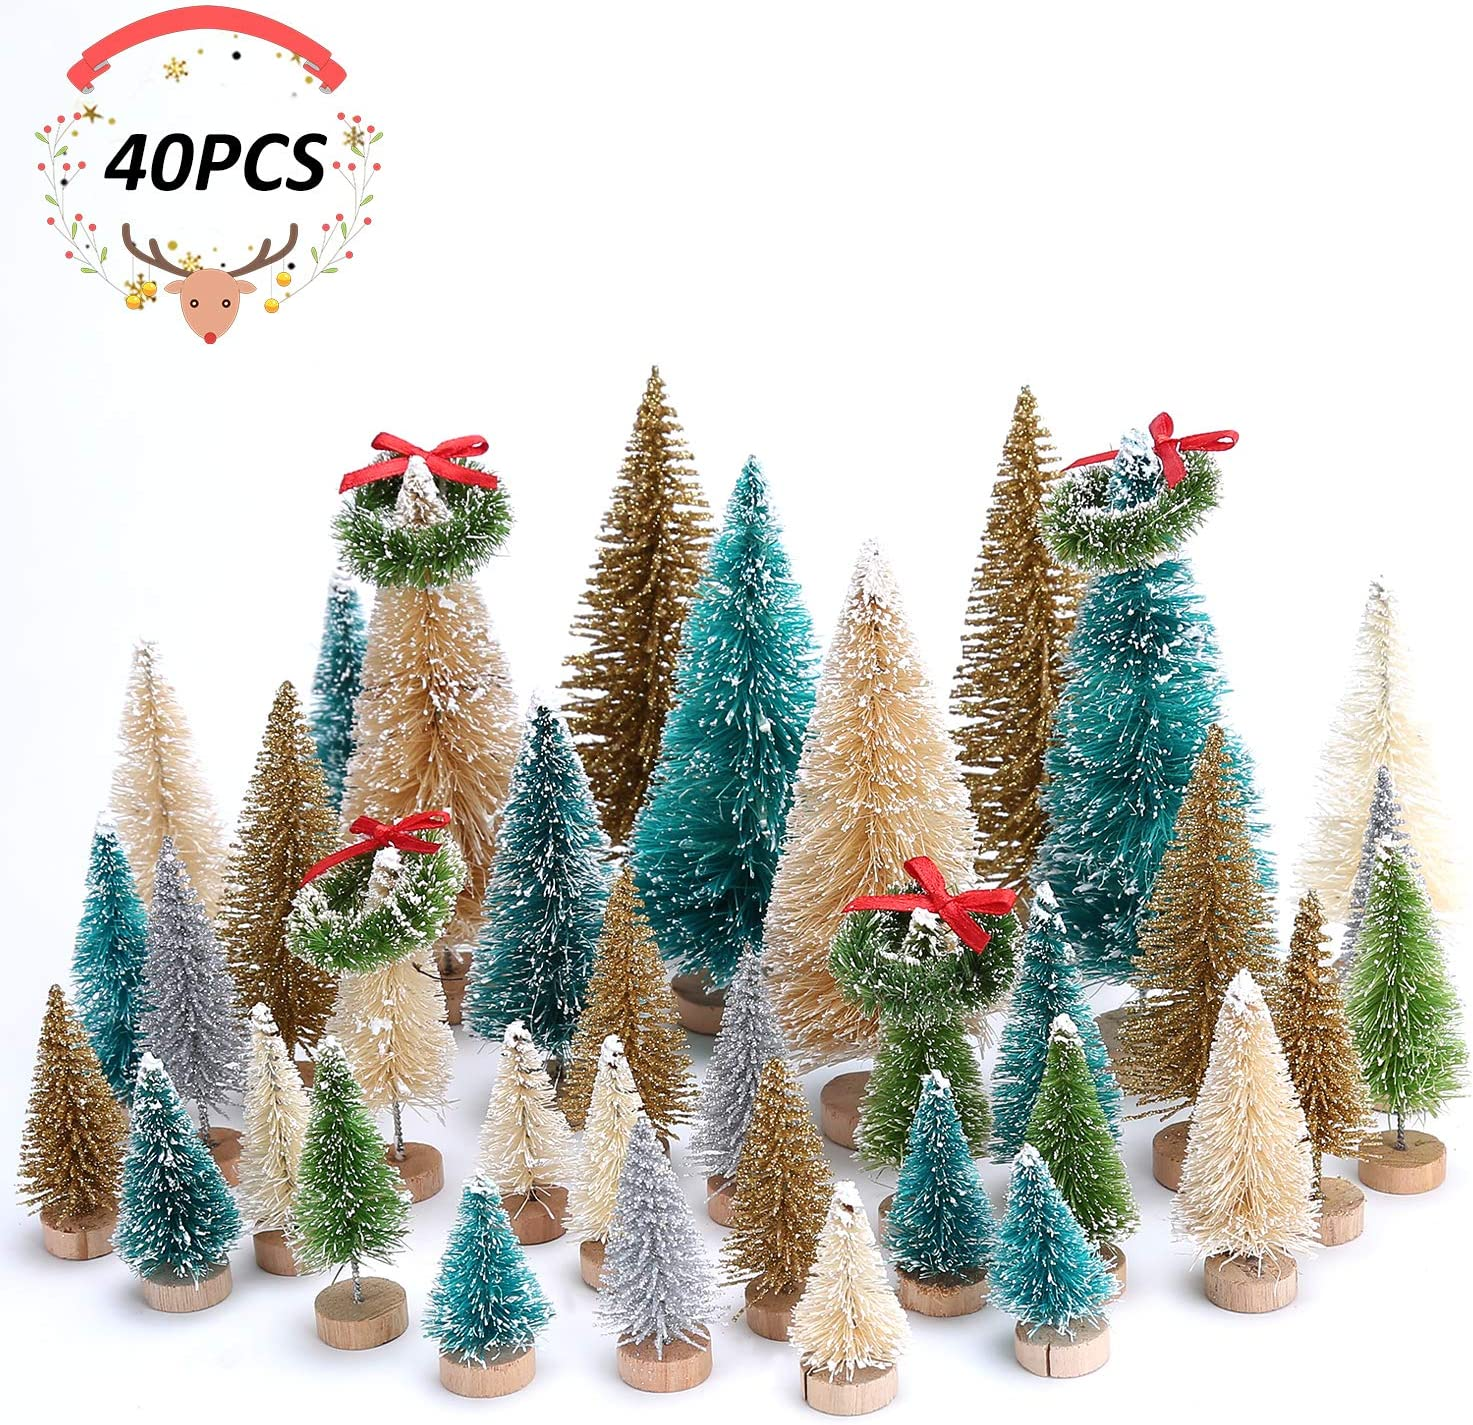 Colovis 40 Pcs Artificial Mini Christmas Trees,Sisal Trees Bottle Brush Trees with Christmas Wreaths for Christmas Table Decorations,DIY Home Decor.